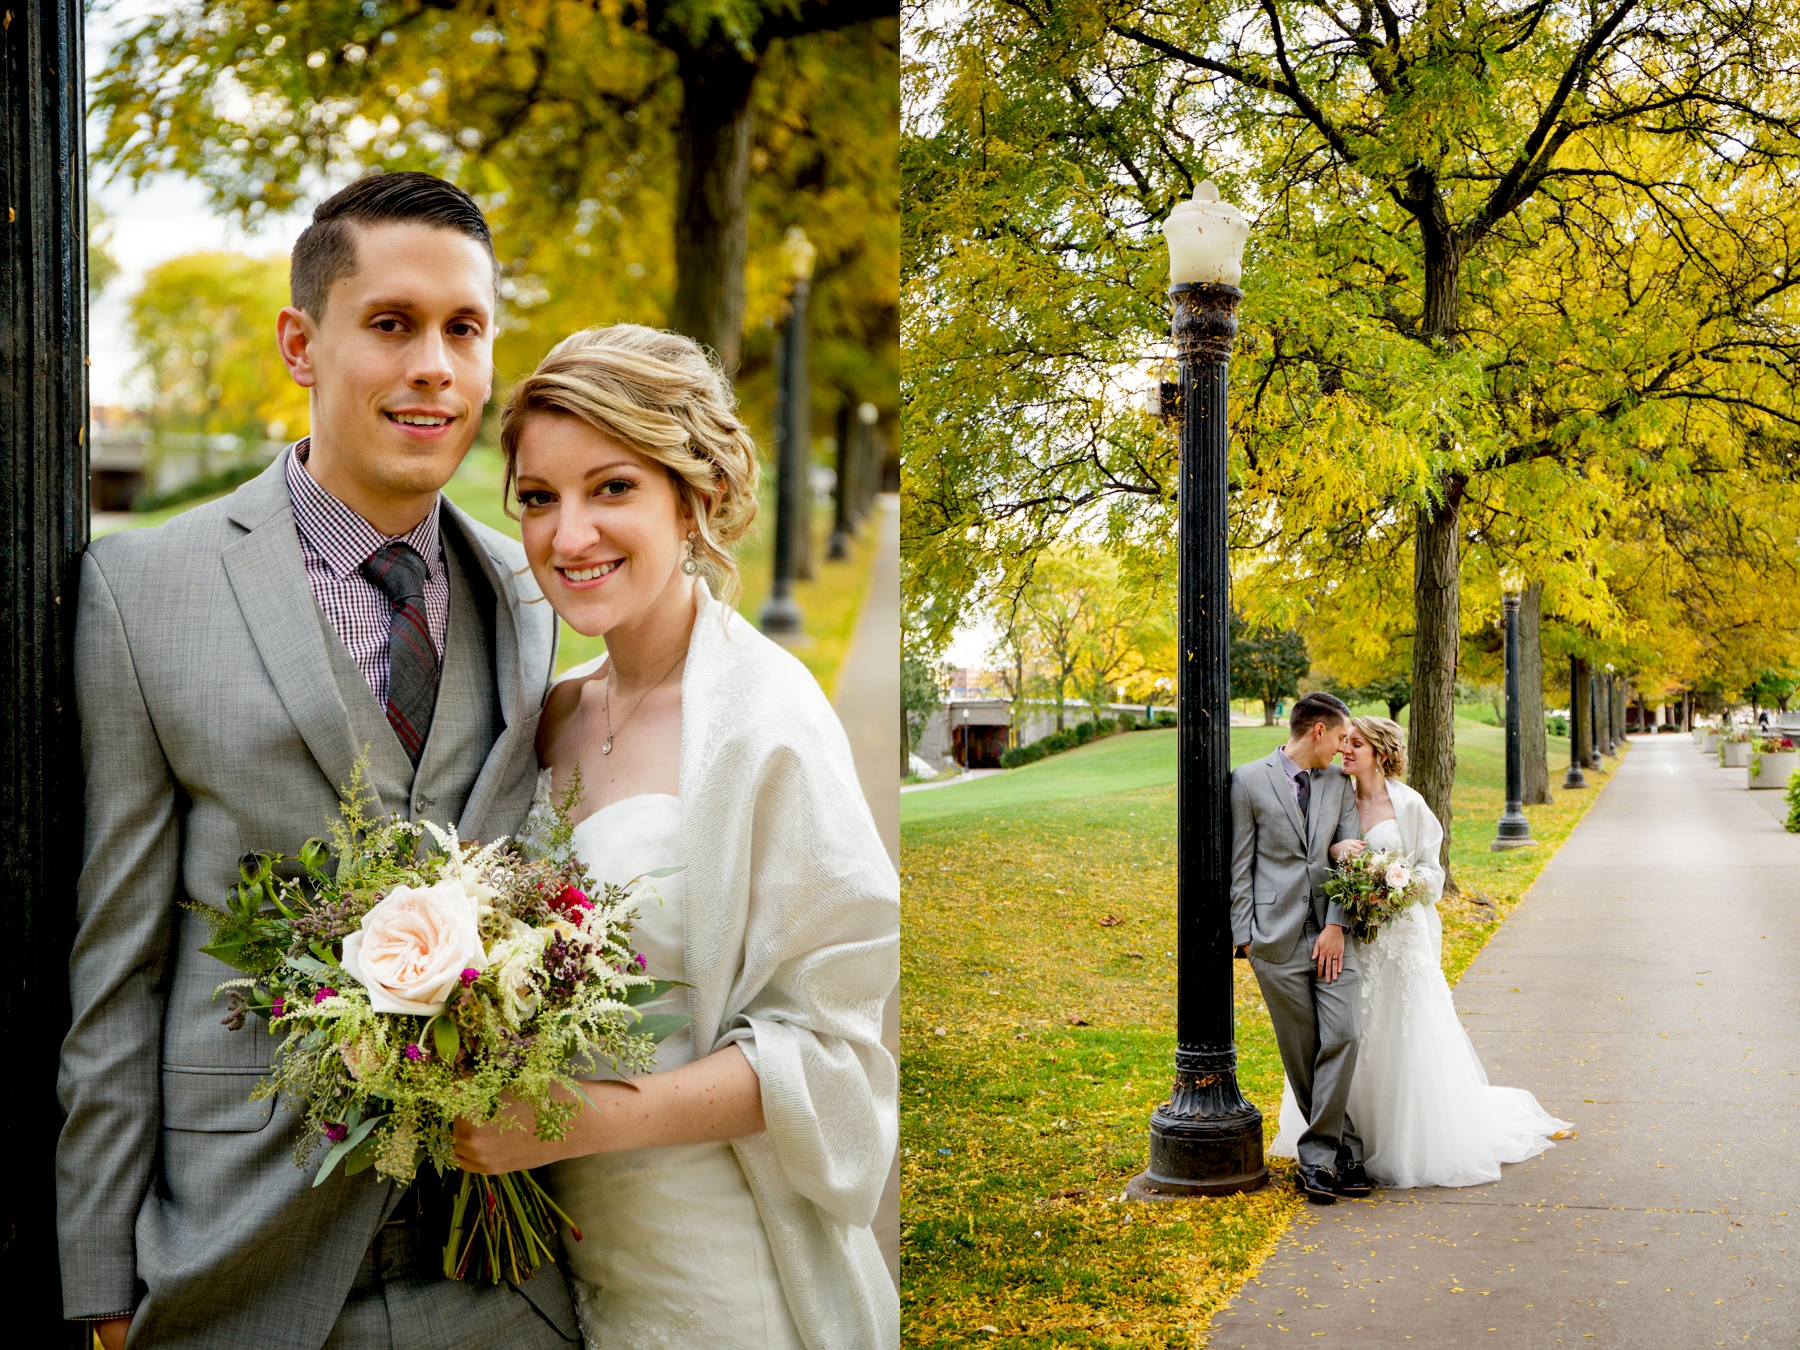 Brandon_Shafer_Photography_Kristen_Corey_Downtown_Grand_Rapids_Fall_Wedding0038.JPG